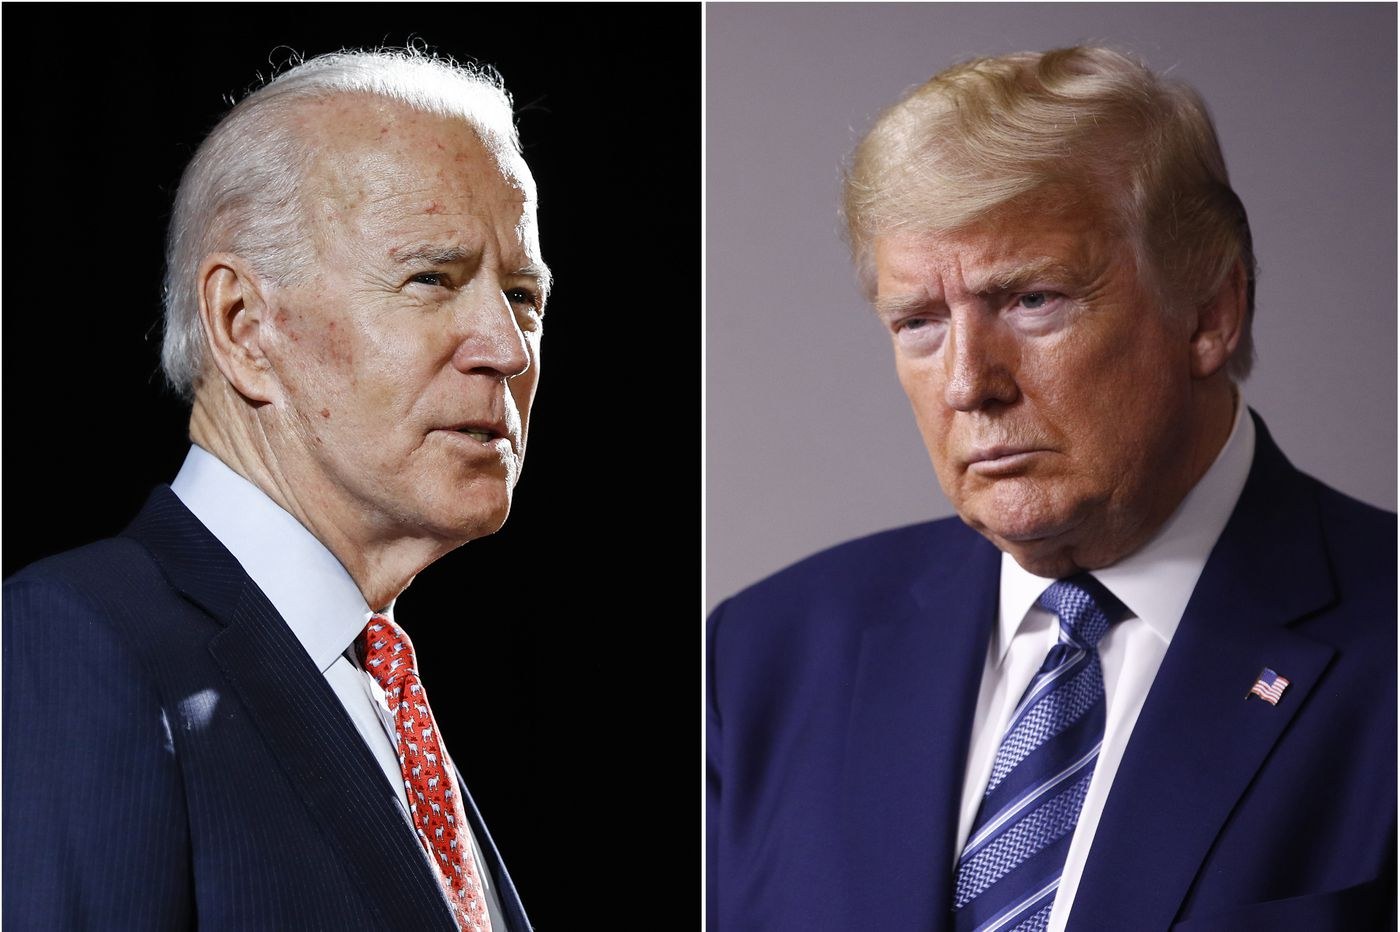 As coronavirus upends country, Trump and Biden seek to make Obama central to their campaigns